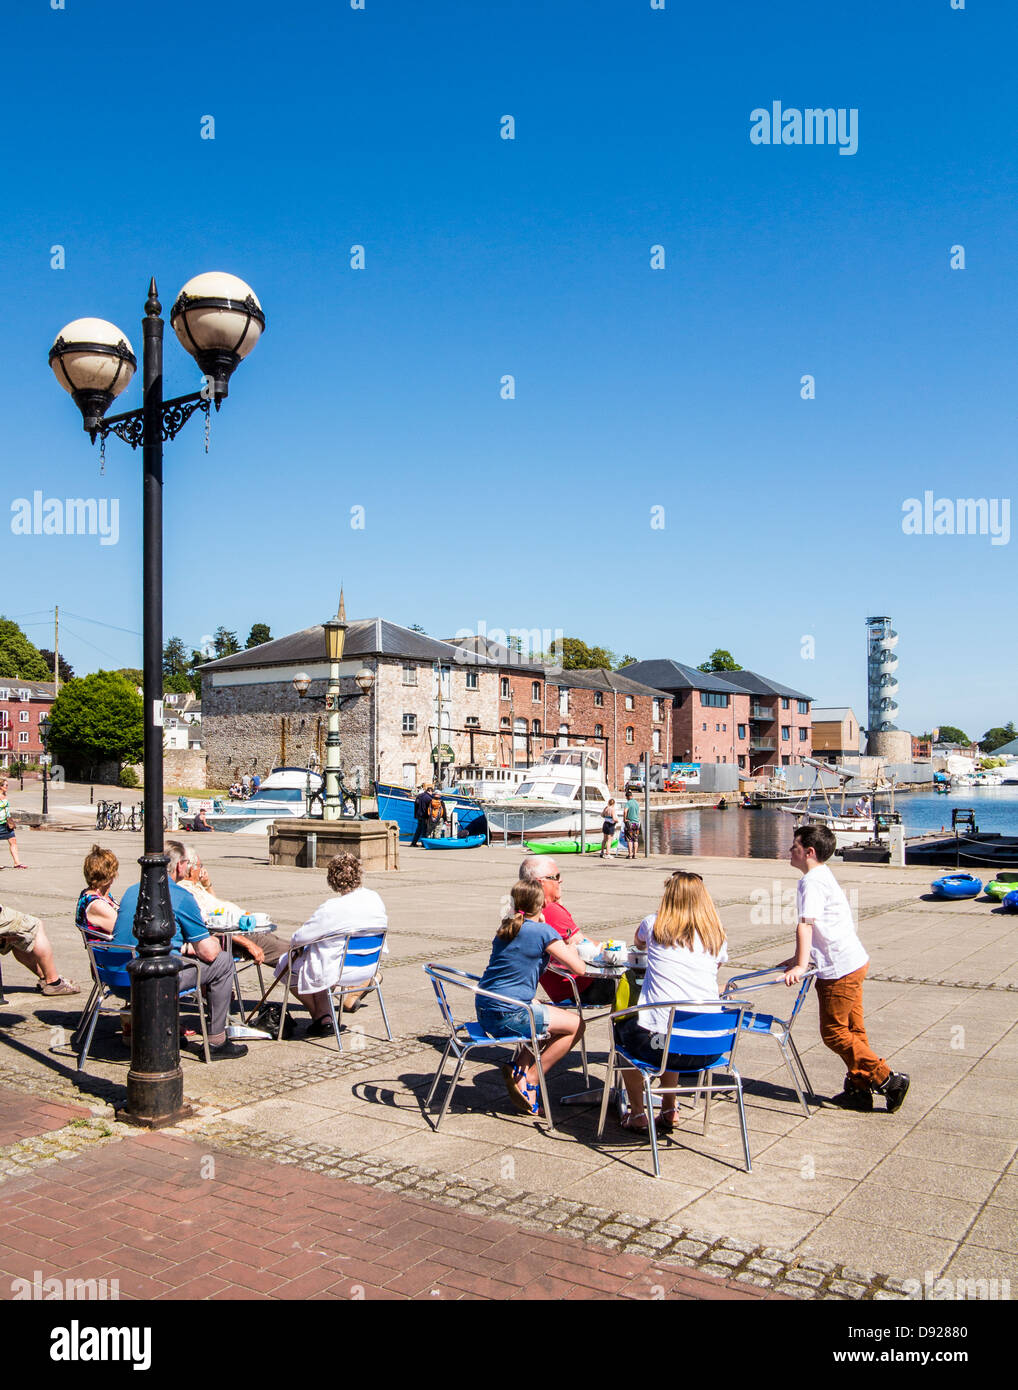 Summer on Exeter Quay beside the river Exe and canal, Exeter, Devon, England - Stock Image